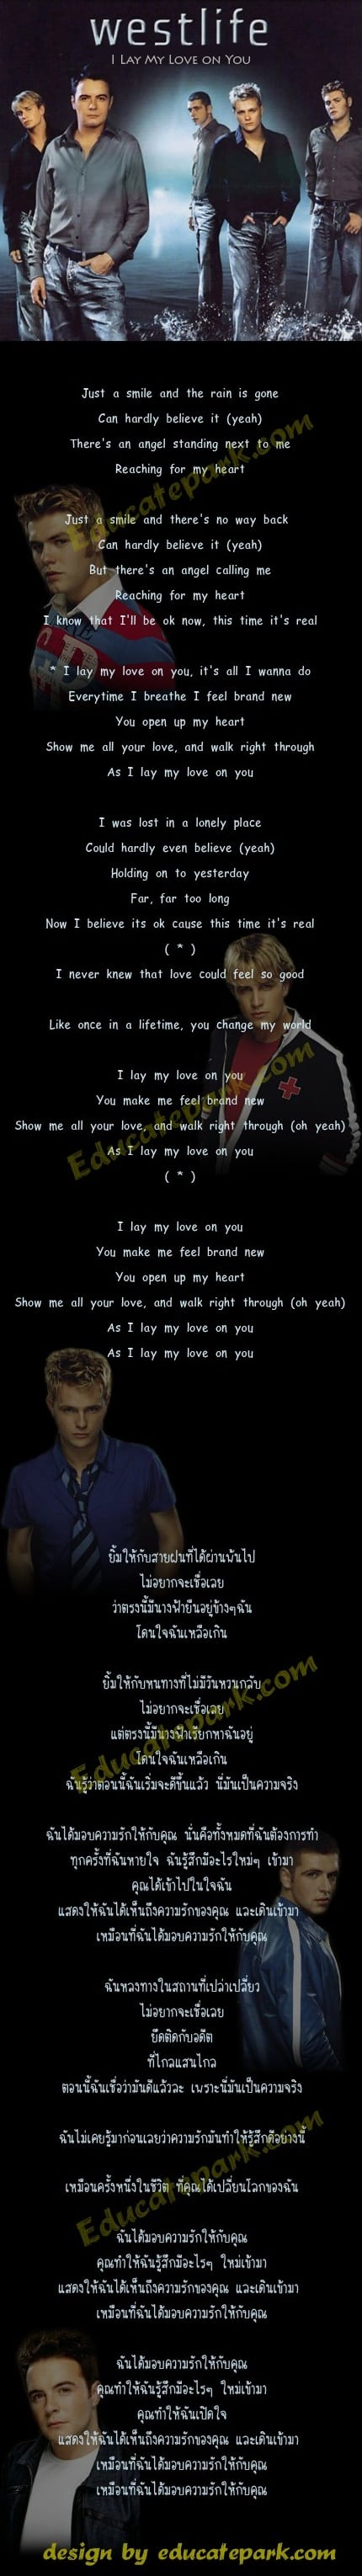 แปลเพลง I Lay My Love On You - Westlife